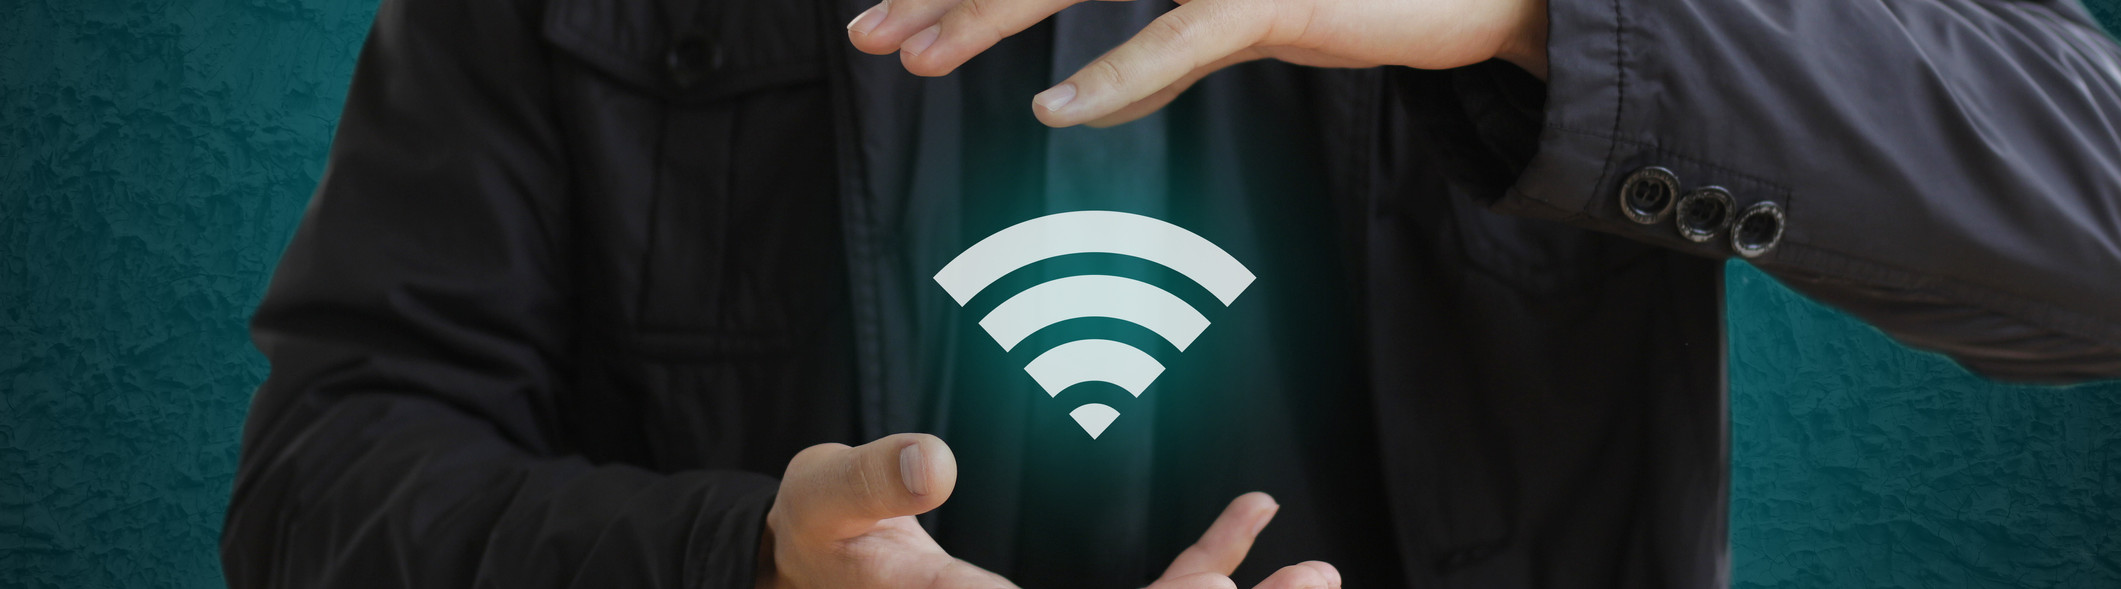 hands with WiFi icon